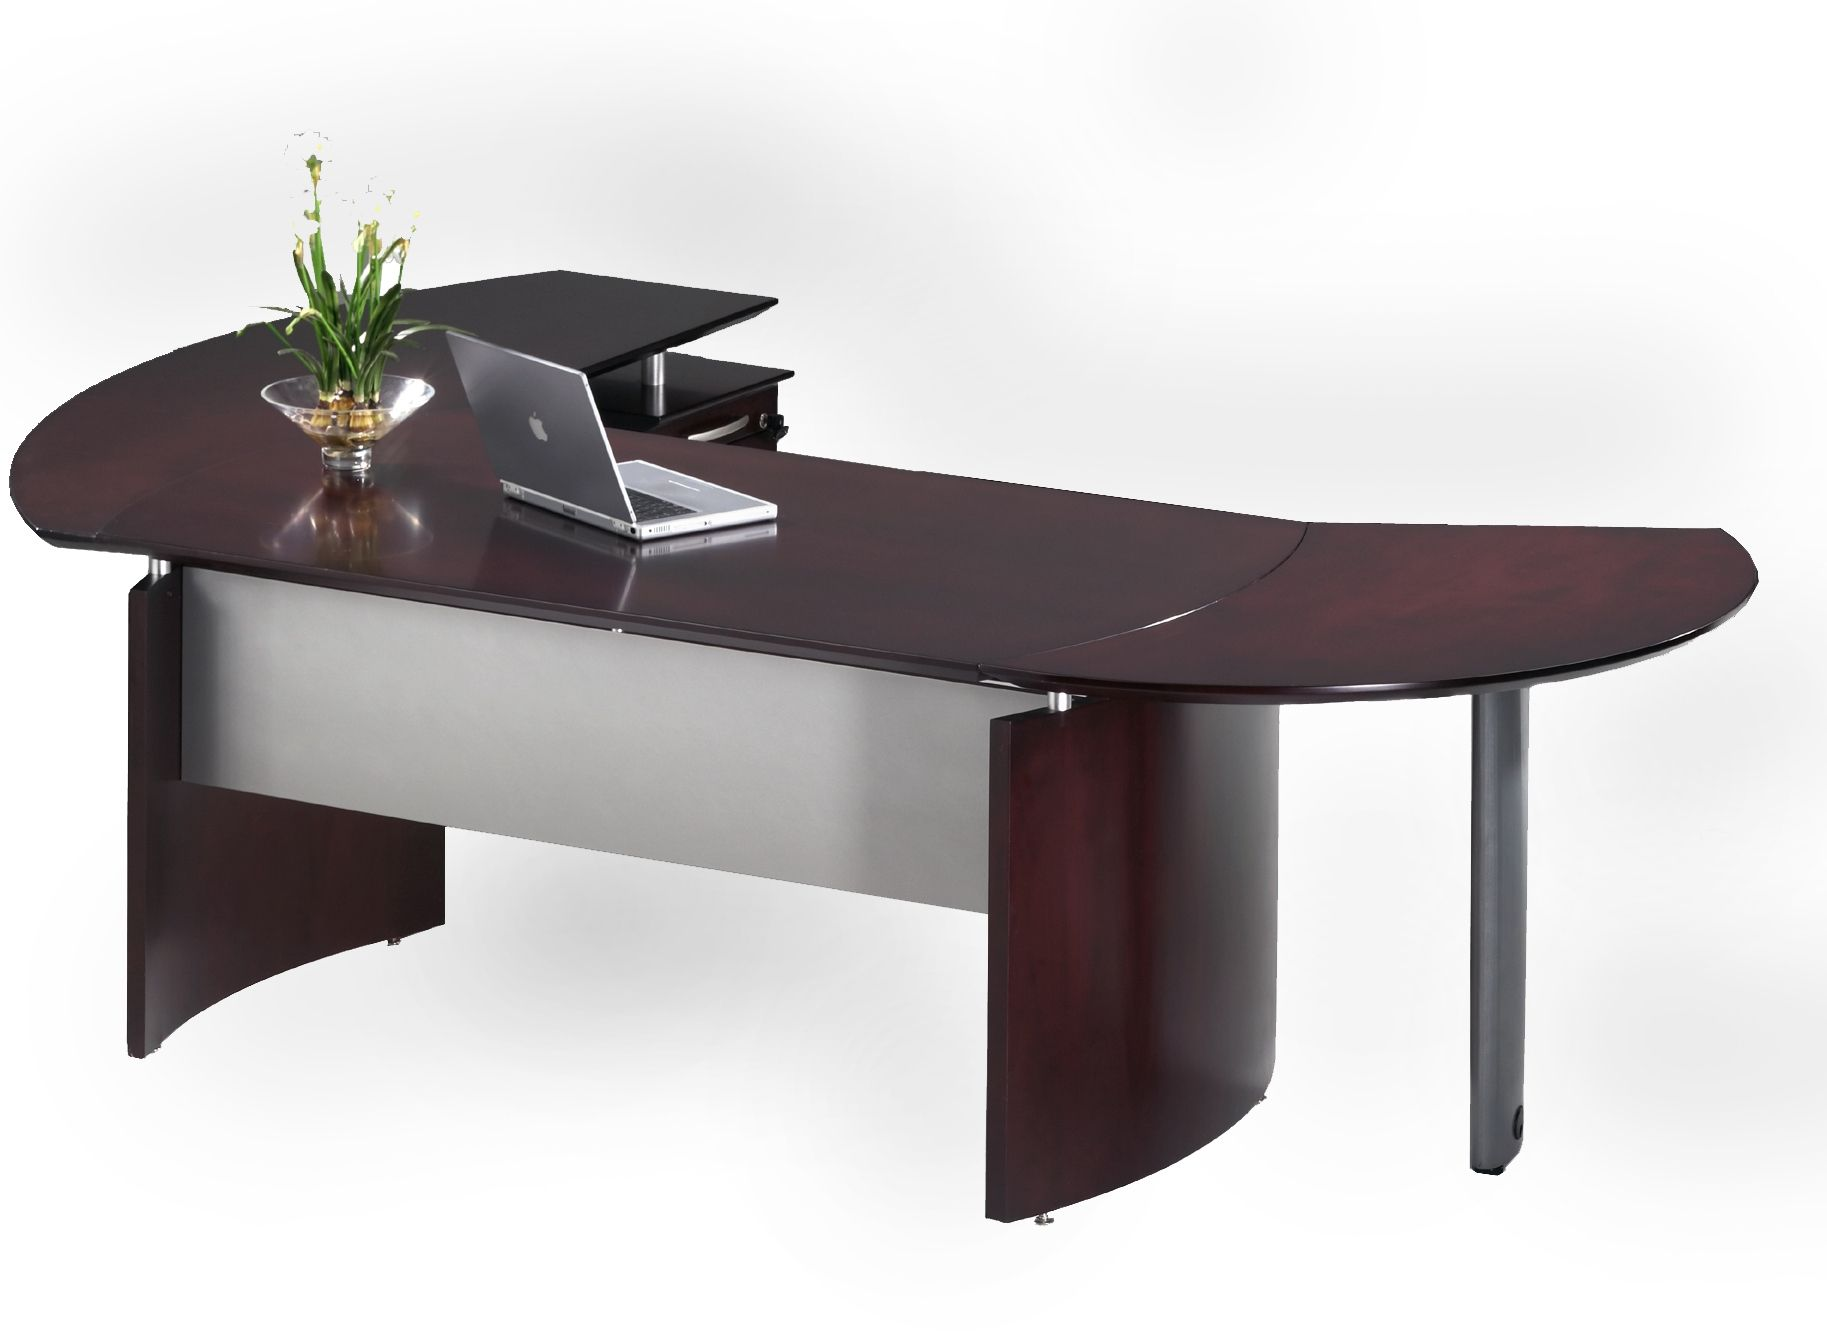 executive office desk desk office office furniture curved desk modern